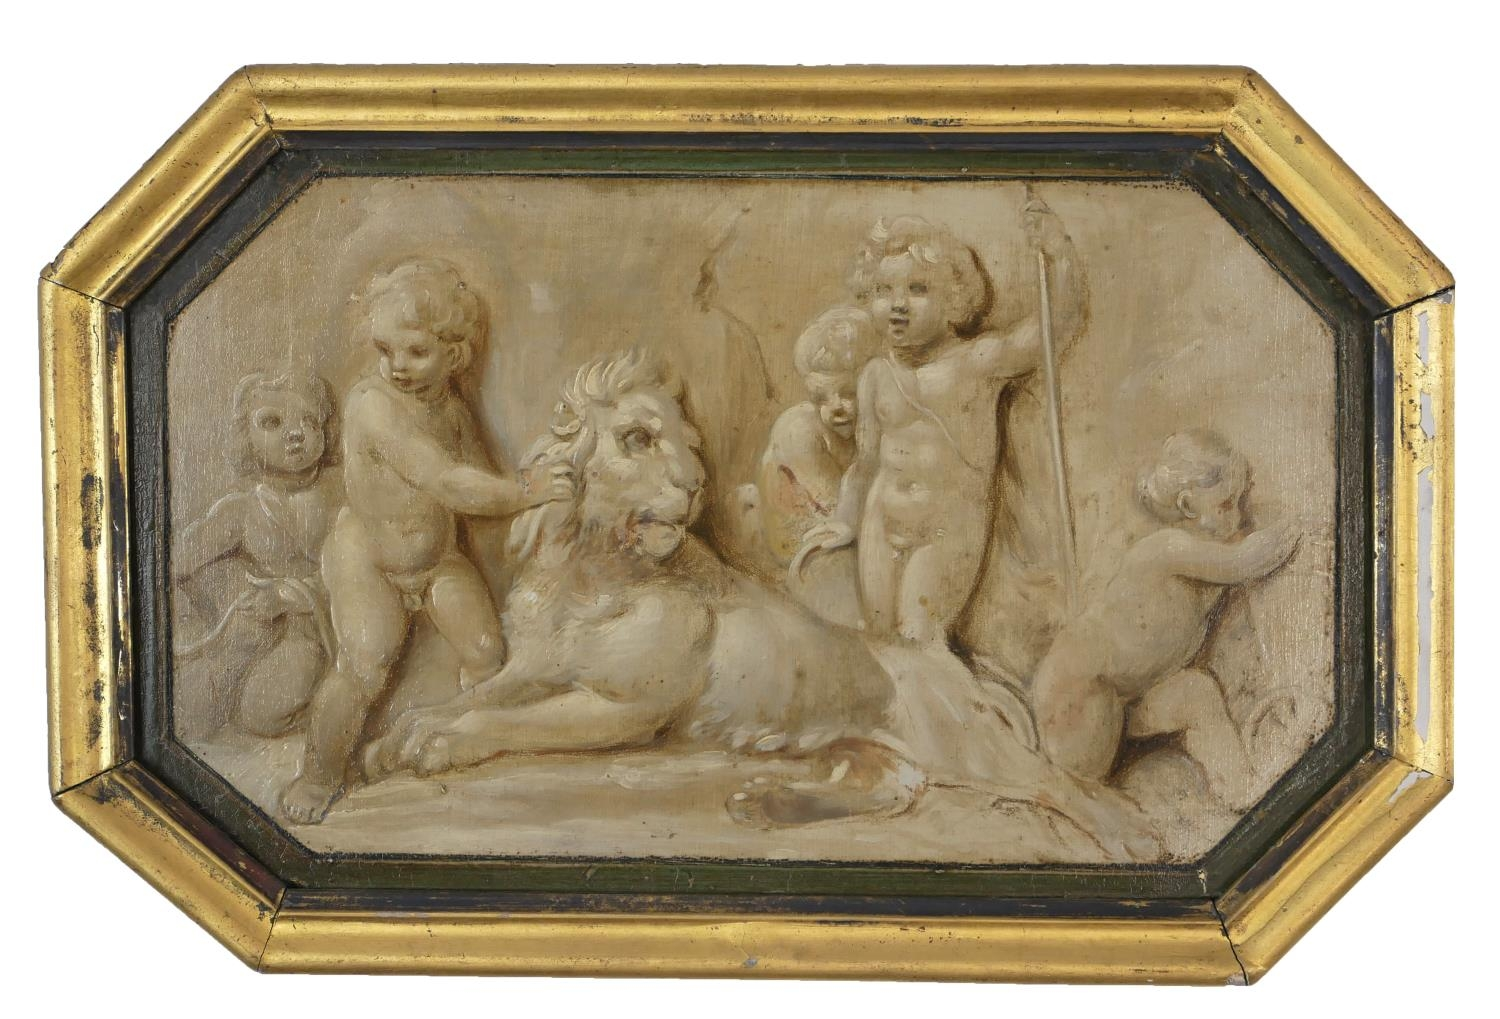 ATTRIBUTED TO JACOB DE WIT, AMSTERDAM, 1695 - 1754, A PAIR OF 18TH CENTURY OILS ON PANEL Putti - Image 2 of 9